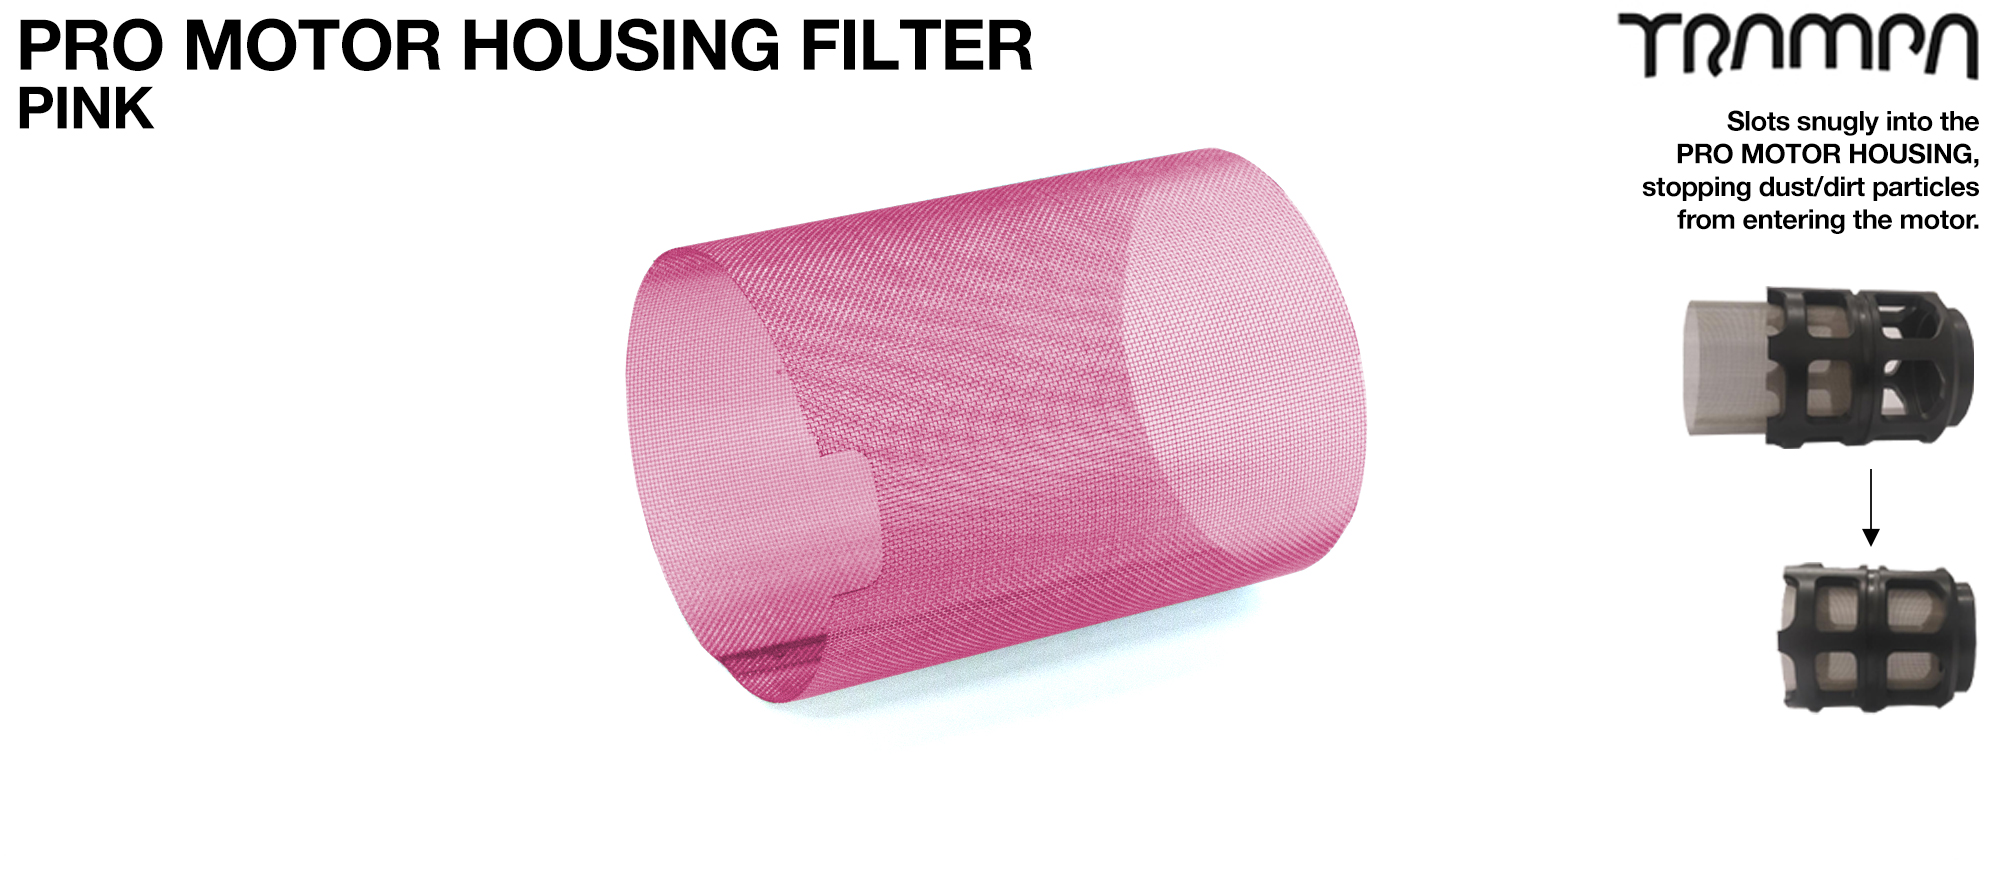 Motor Protection Cover MESH FILTER - PINK